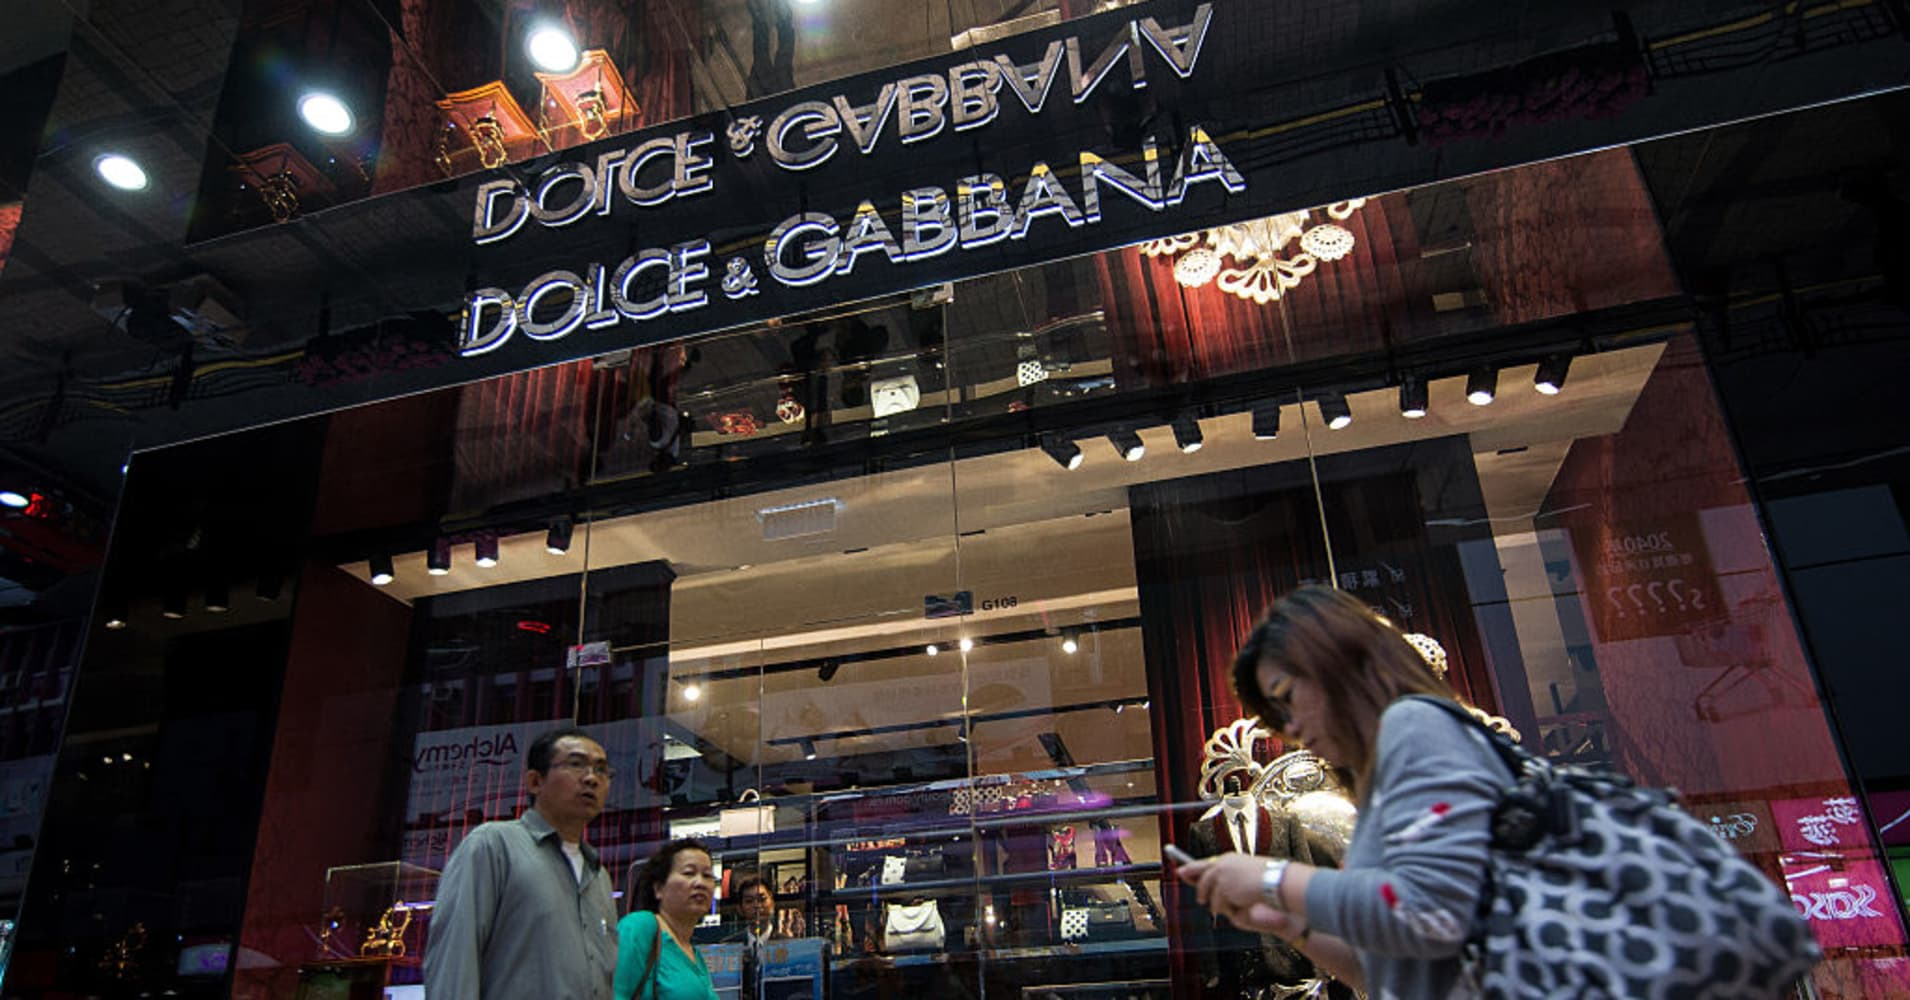 Dolce and Gabbana accused of racism in Chinese 'chopsticks' ads